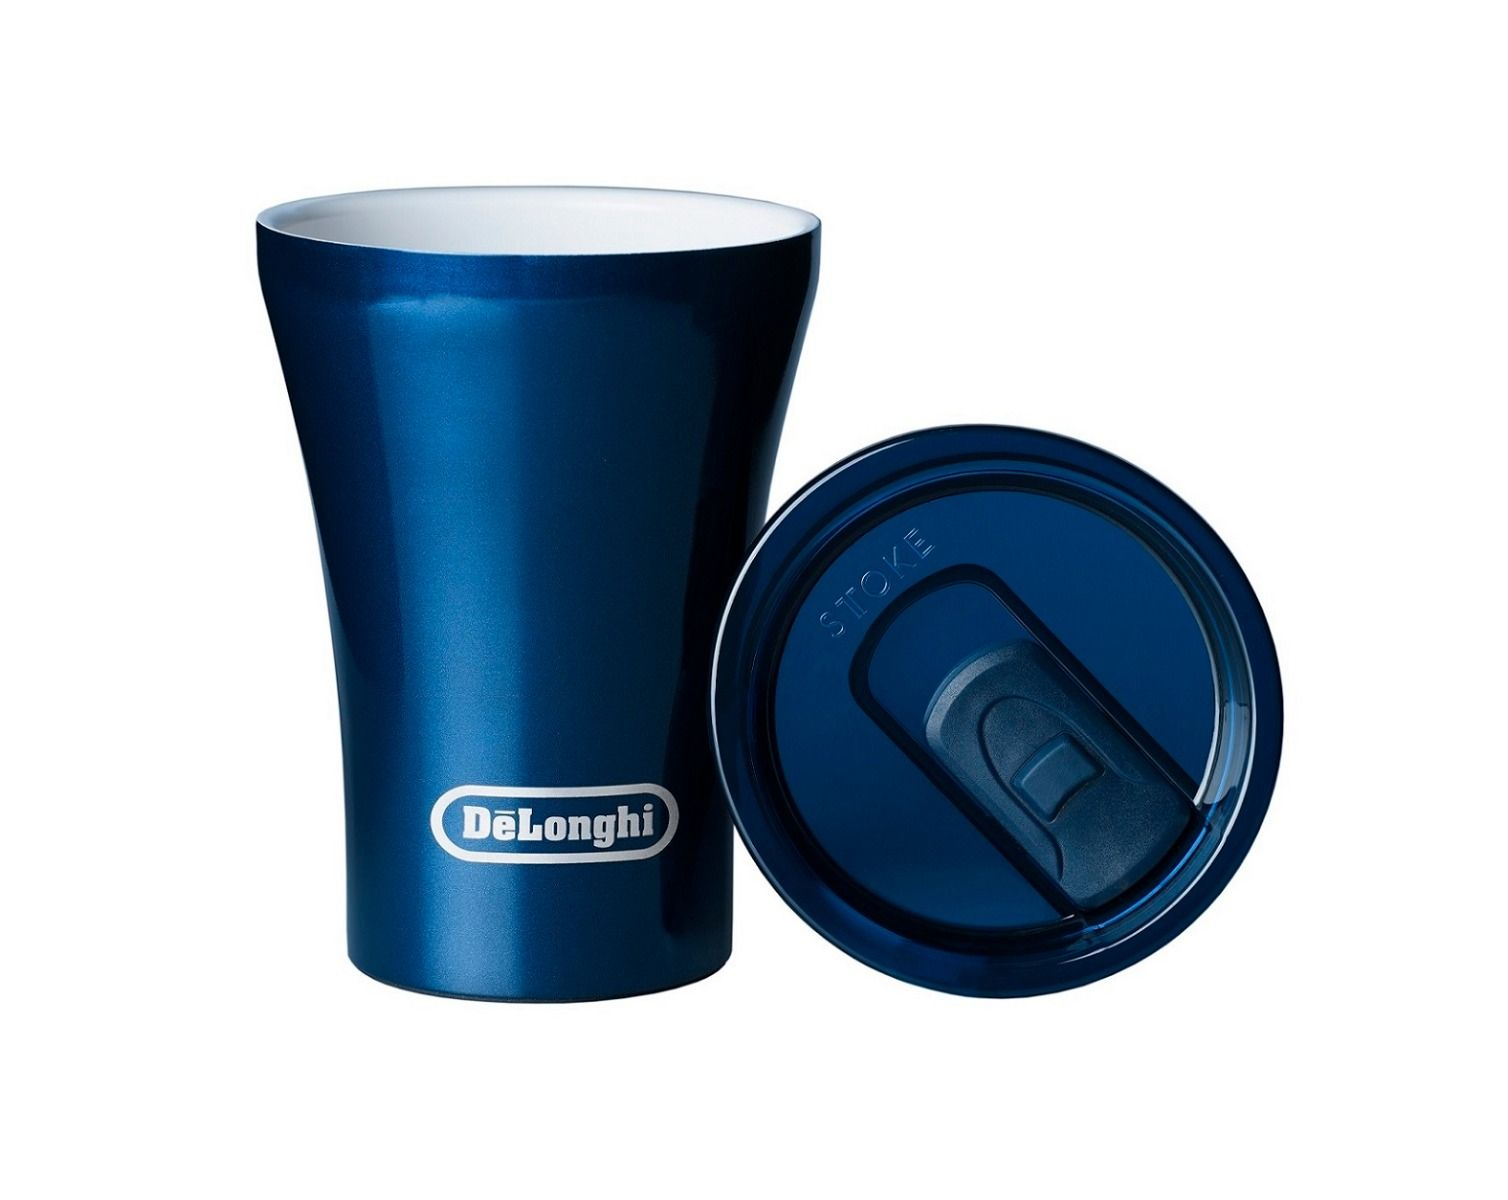 the De'Longhi x Sttoke Distinctively Blue ceramic reusable cup